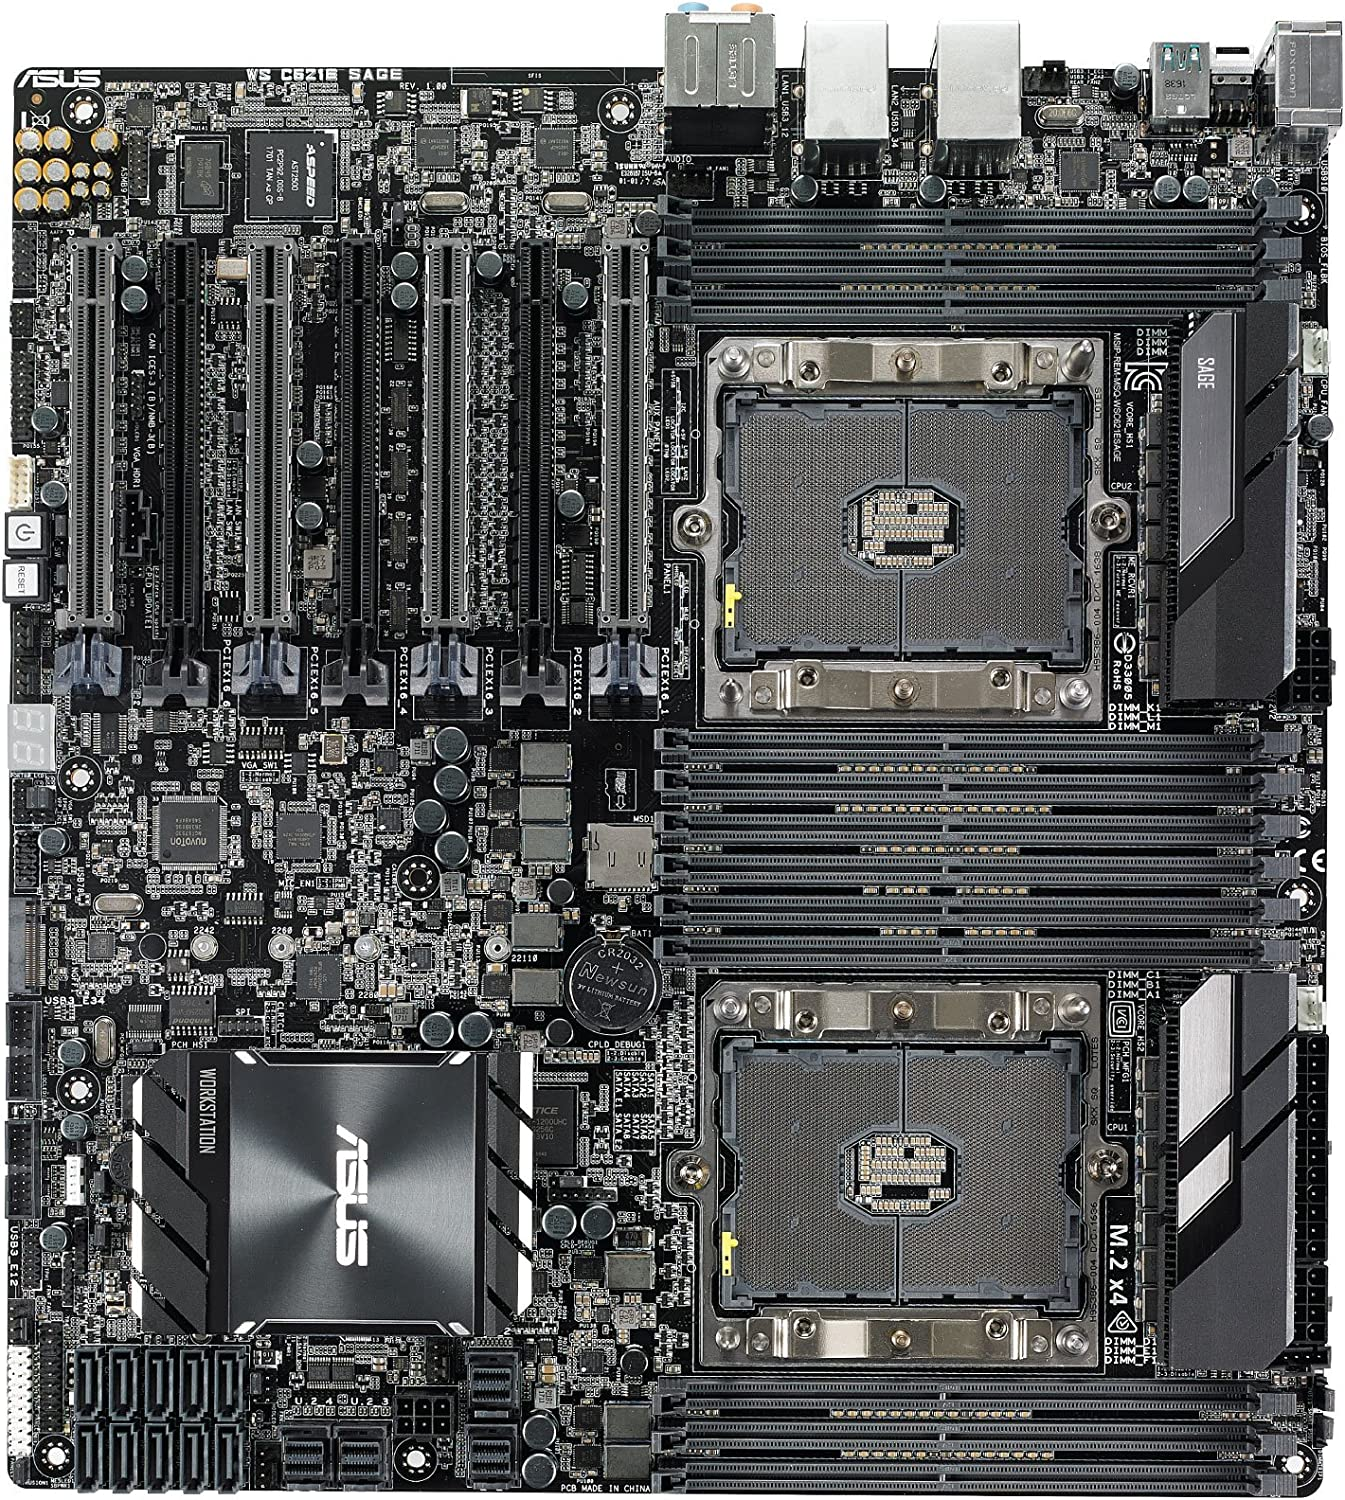 ASUS WS C621E Sage Extreme Power Intel Xeon Processor Workstation Motherboard for Two-way XEON CPU performance, with U.2, M.2 connectors, dual Gb LAN, USB 3.1 Type-C & Type-A, 10 x SATA 6Gb/s ports